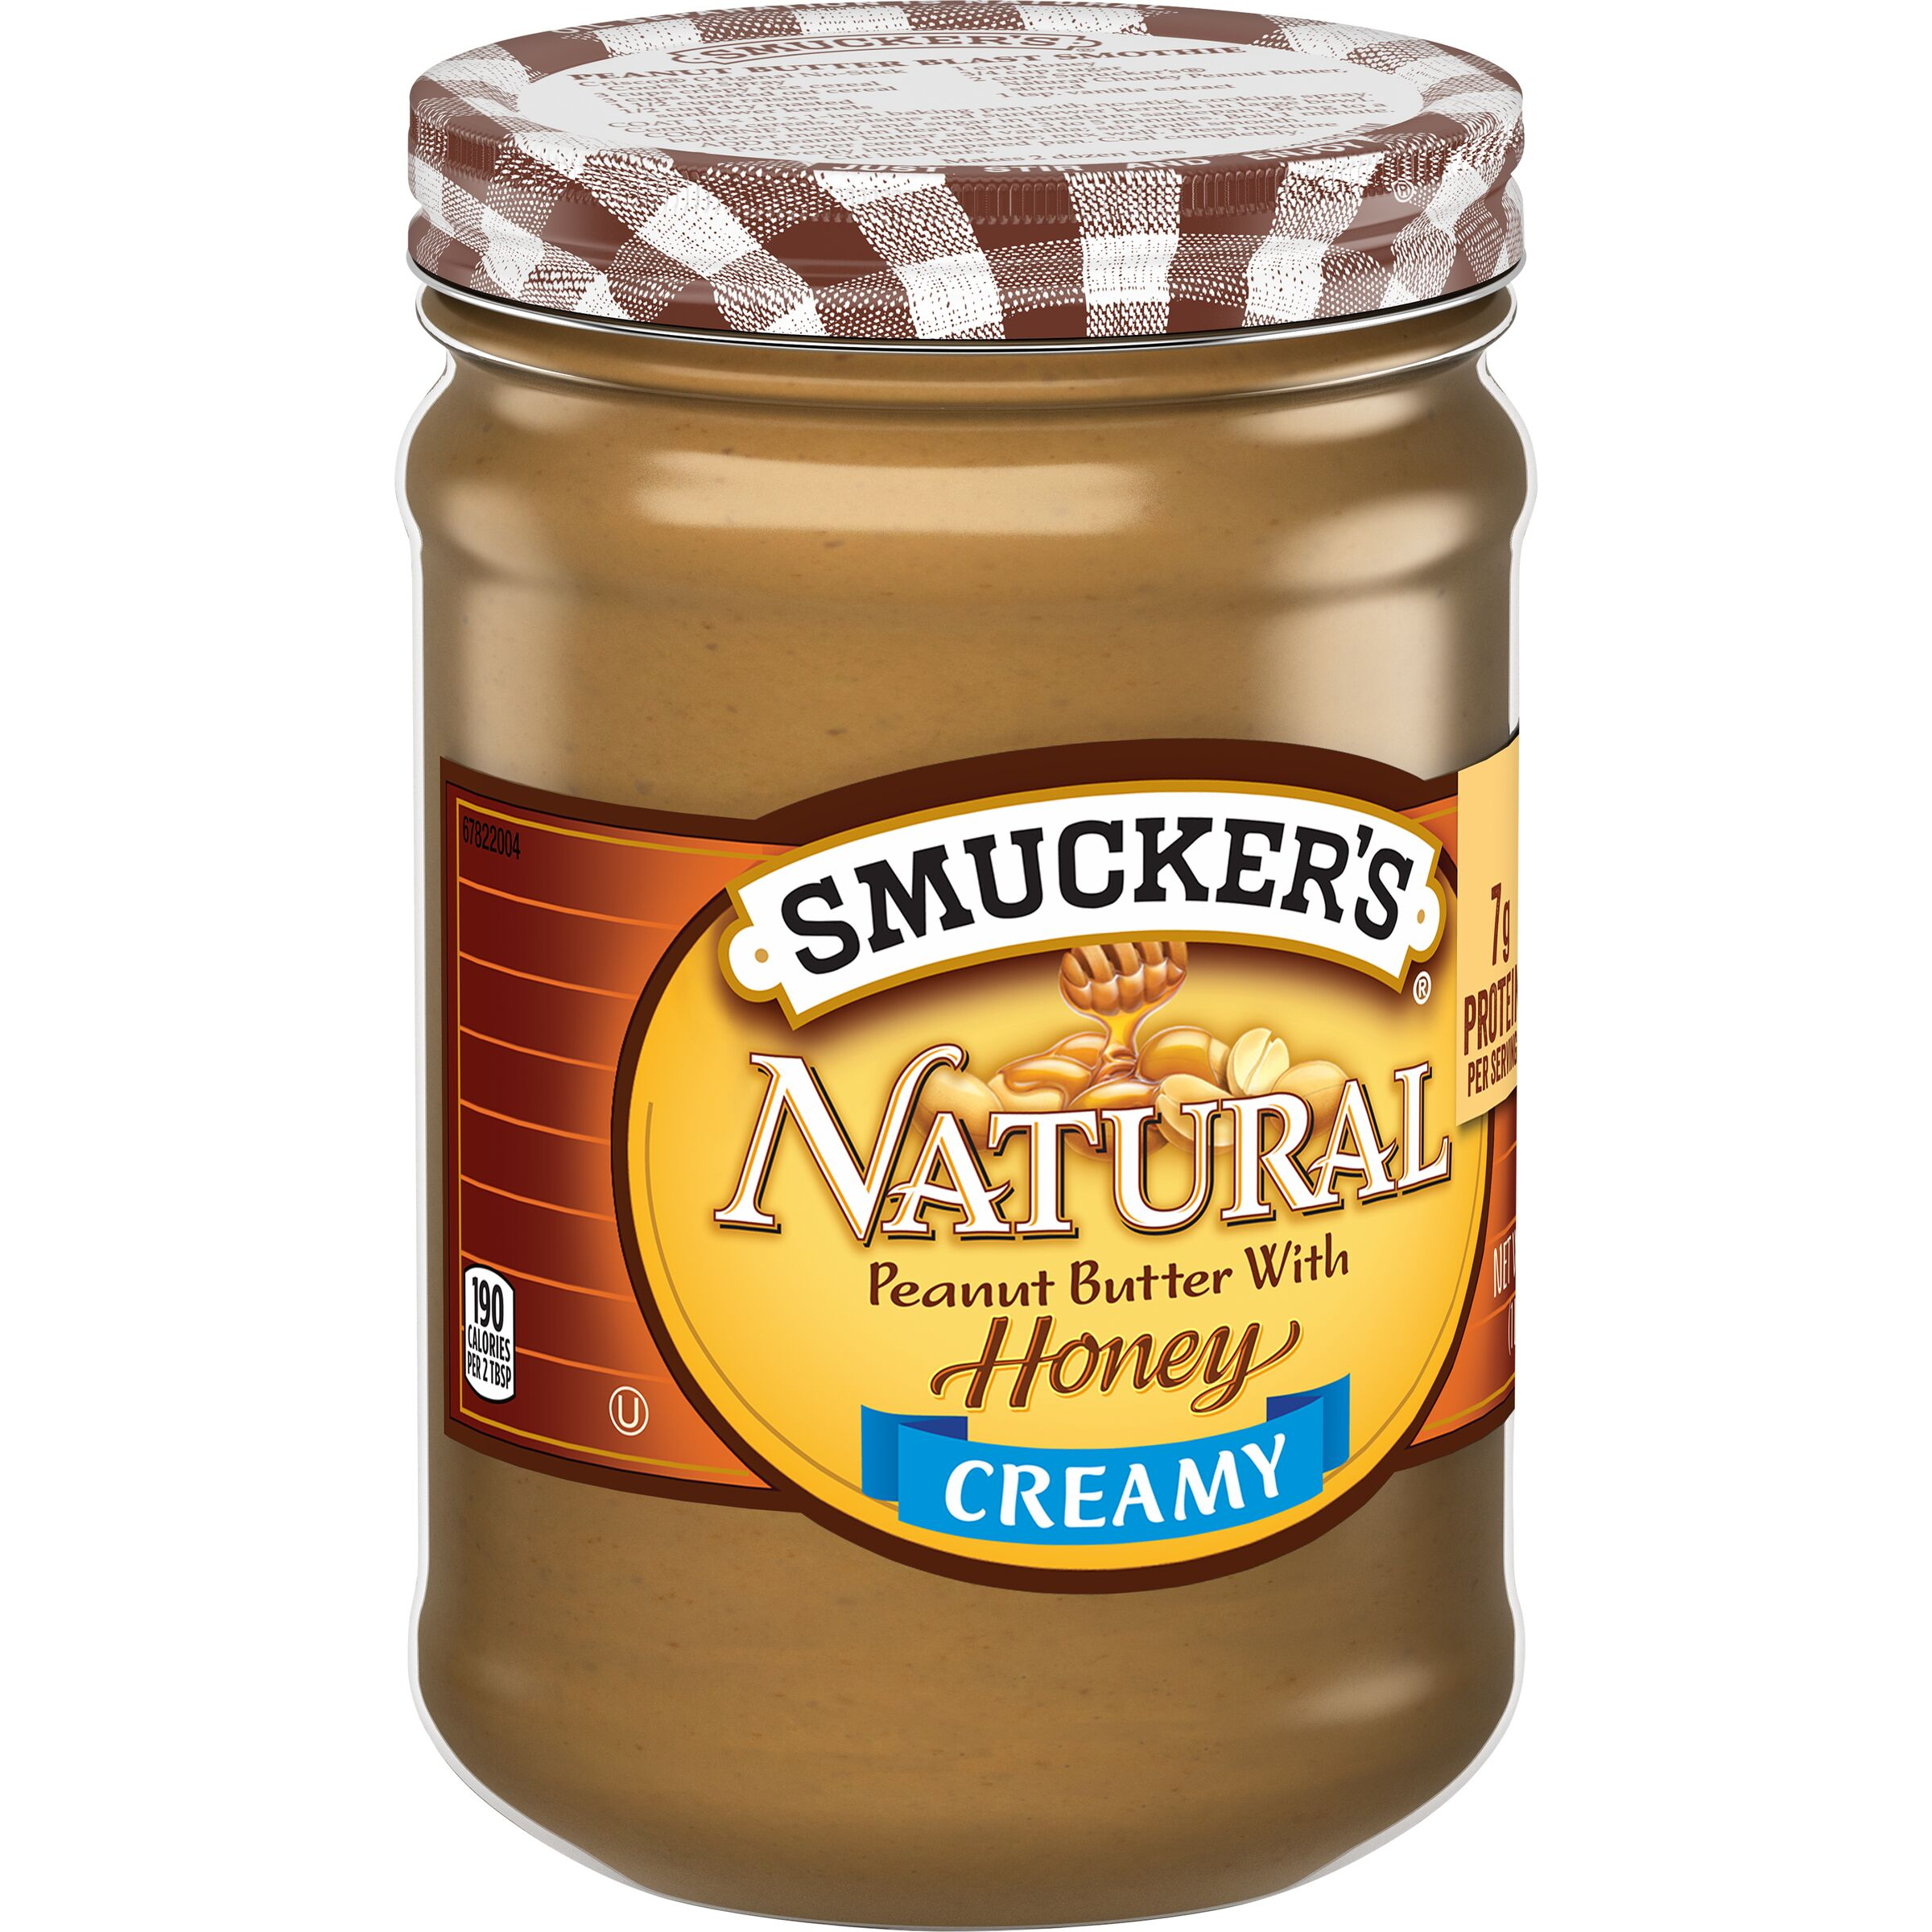 Smucker's  Natural Peanut Butter with Honey